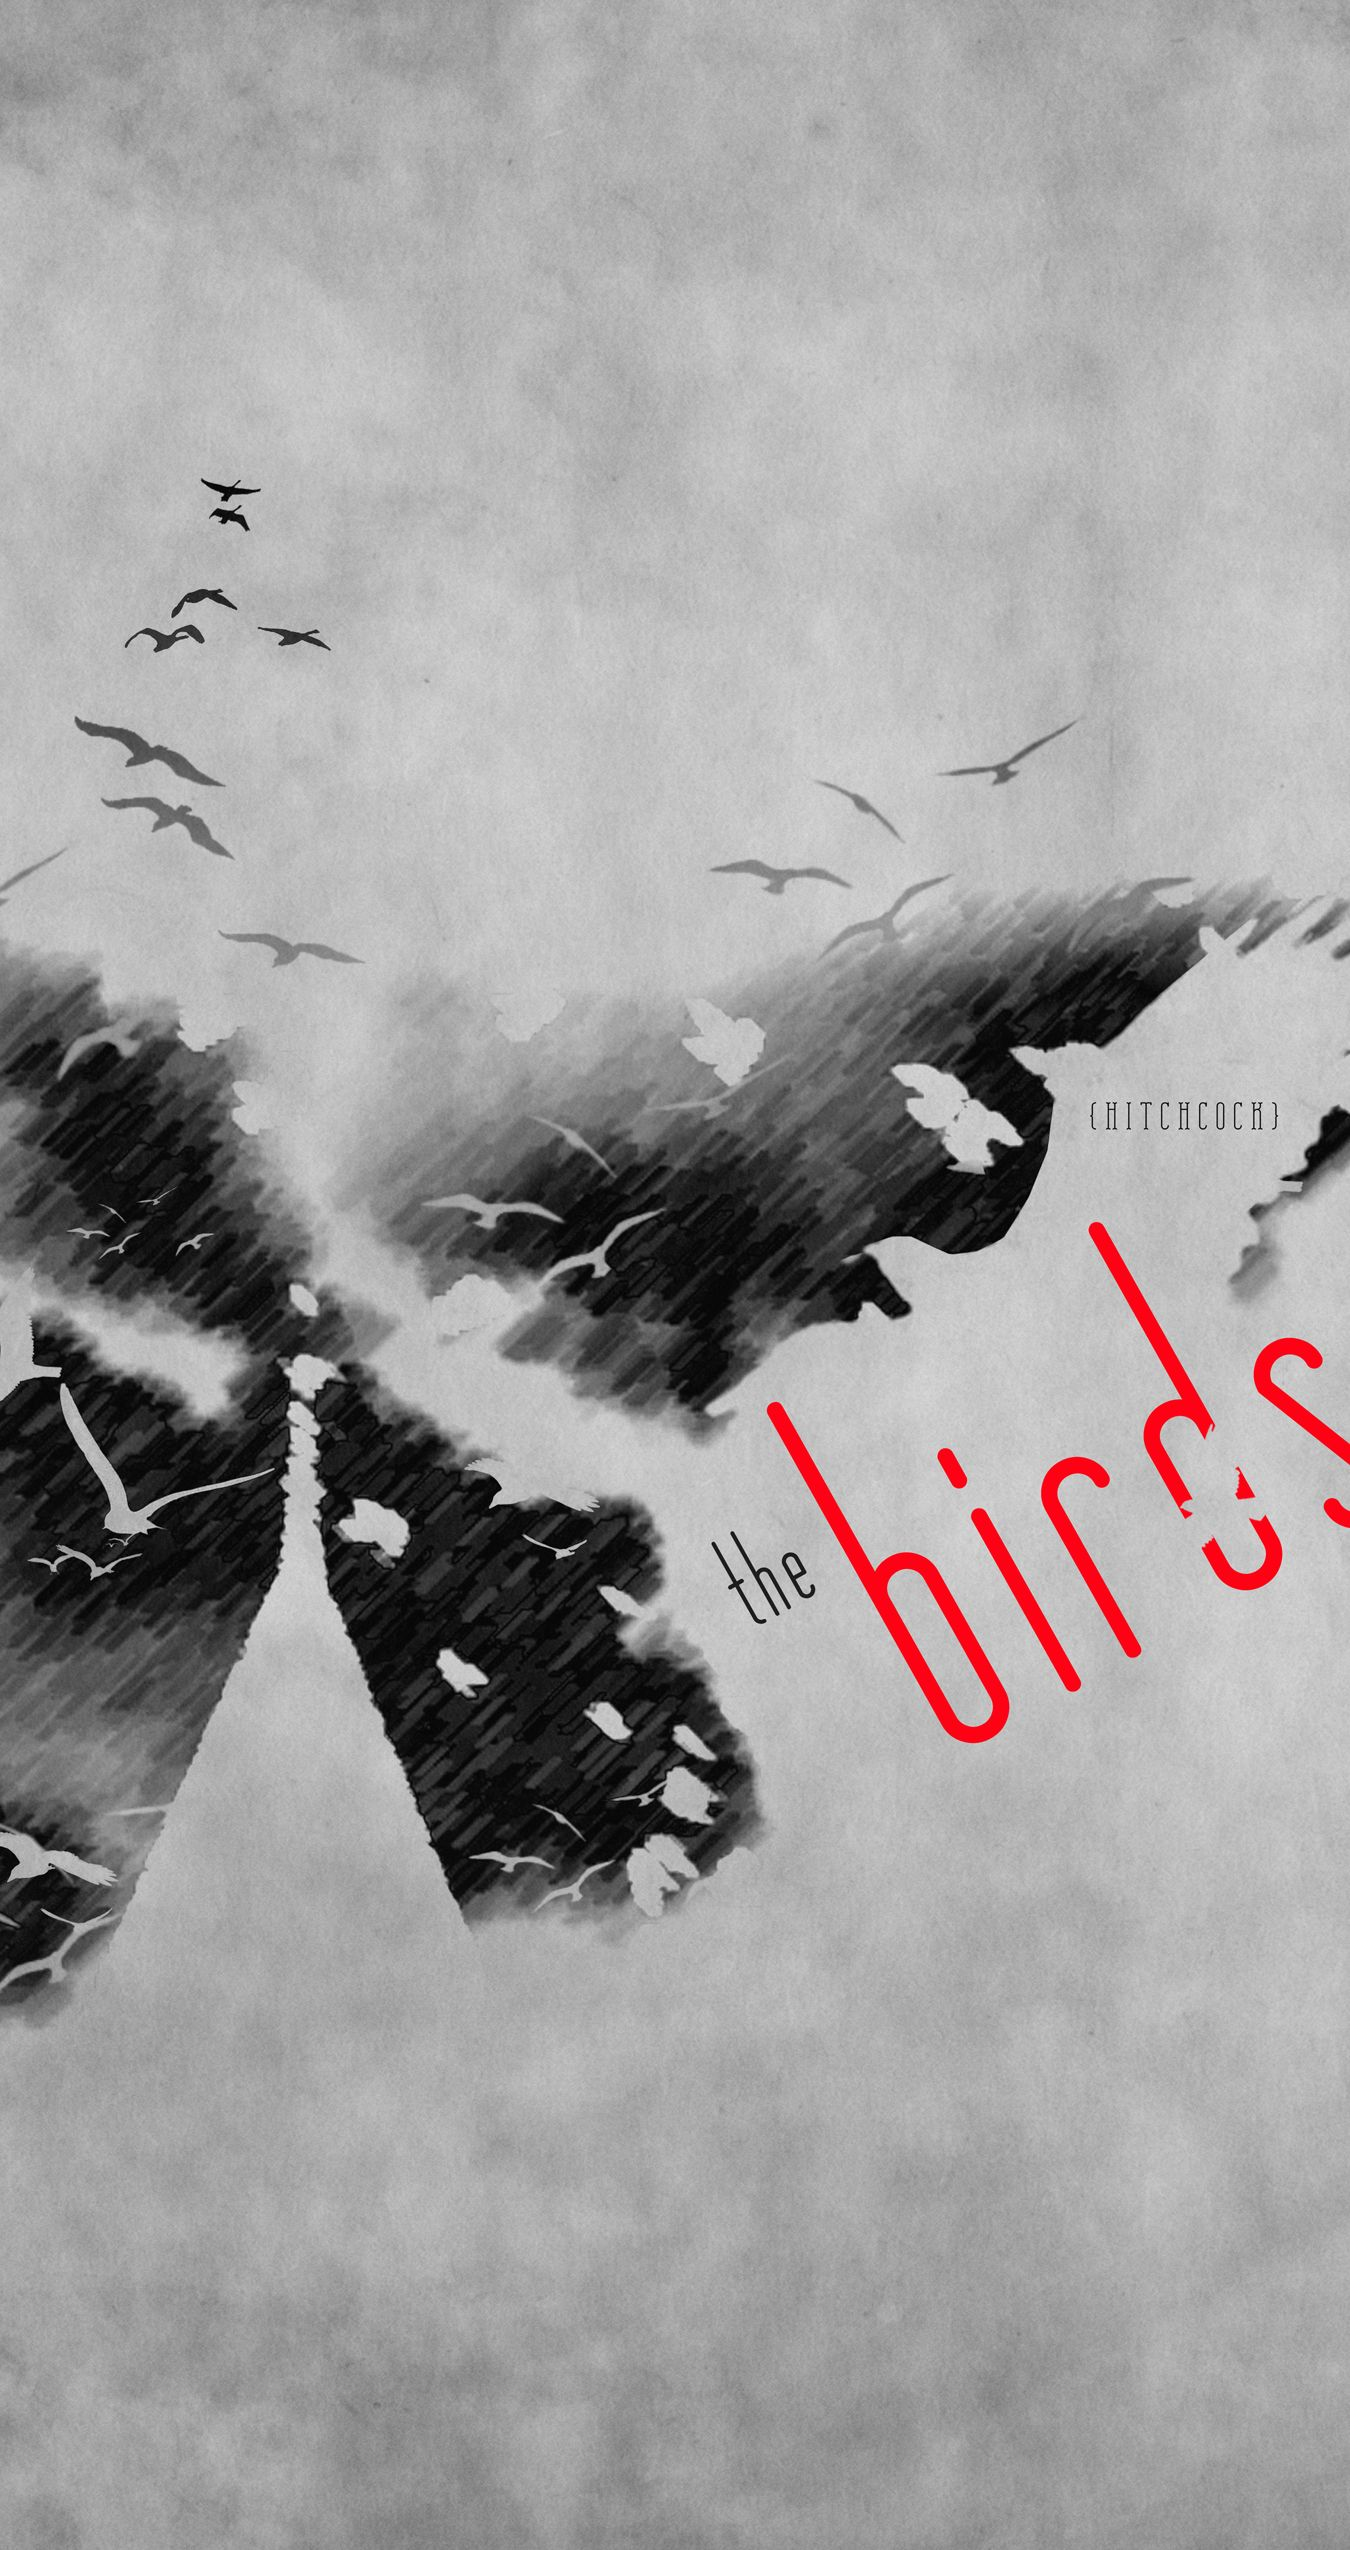 The Birds - Hitchcock   poster design